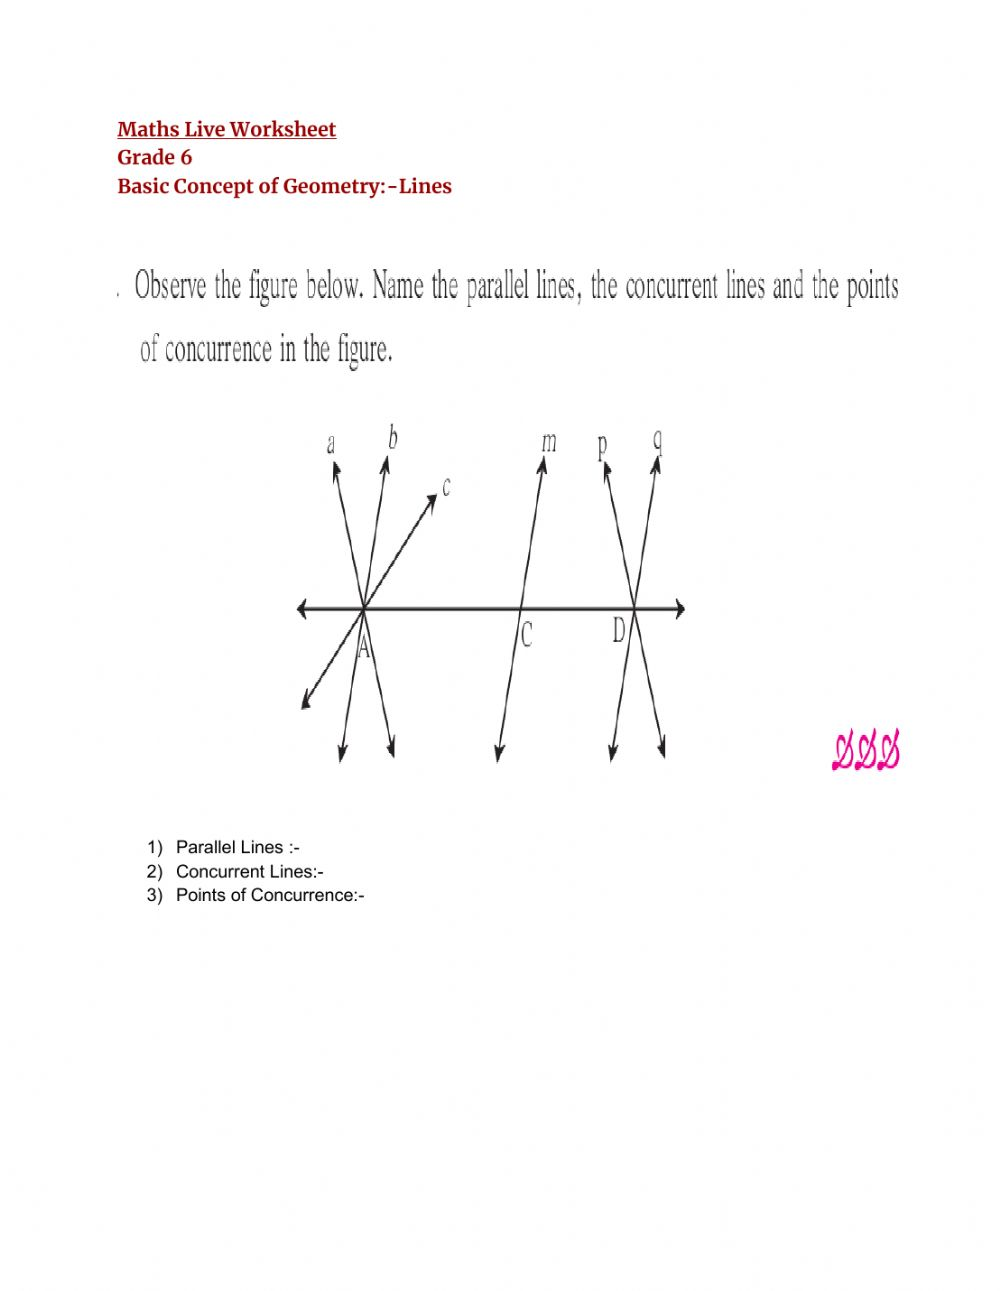 medium resolution of Basic Concept of Geometry:link worksheet